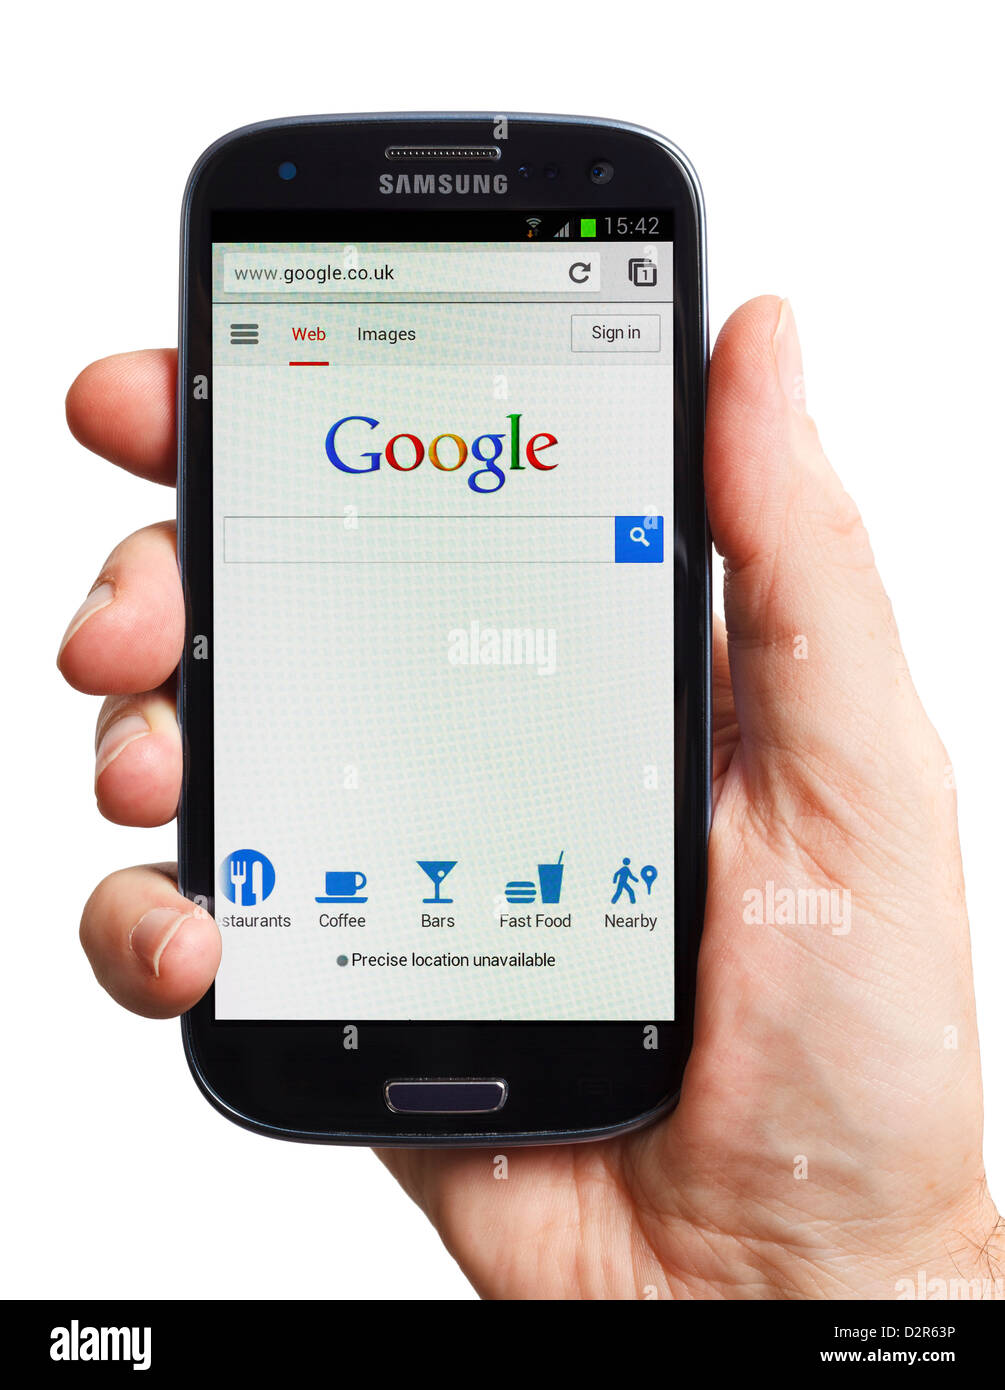 Samsung I9300 Galaxy S III official images